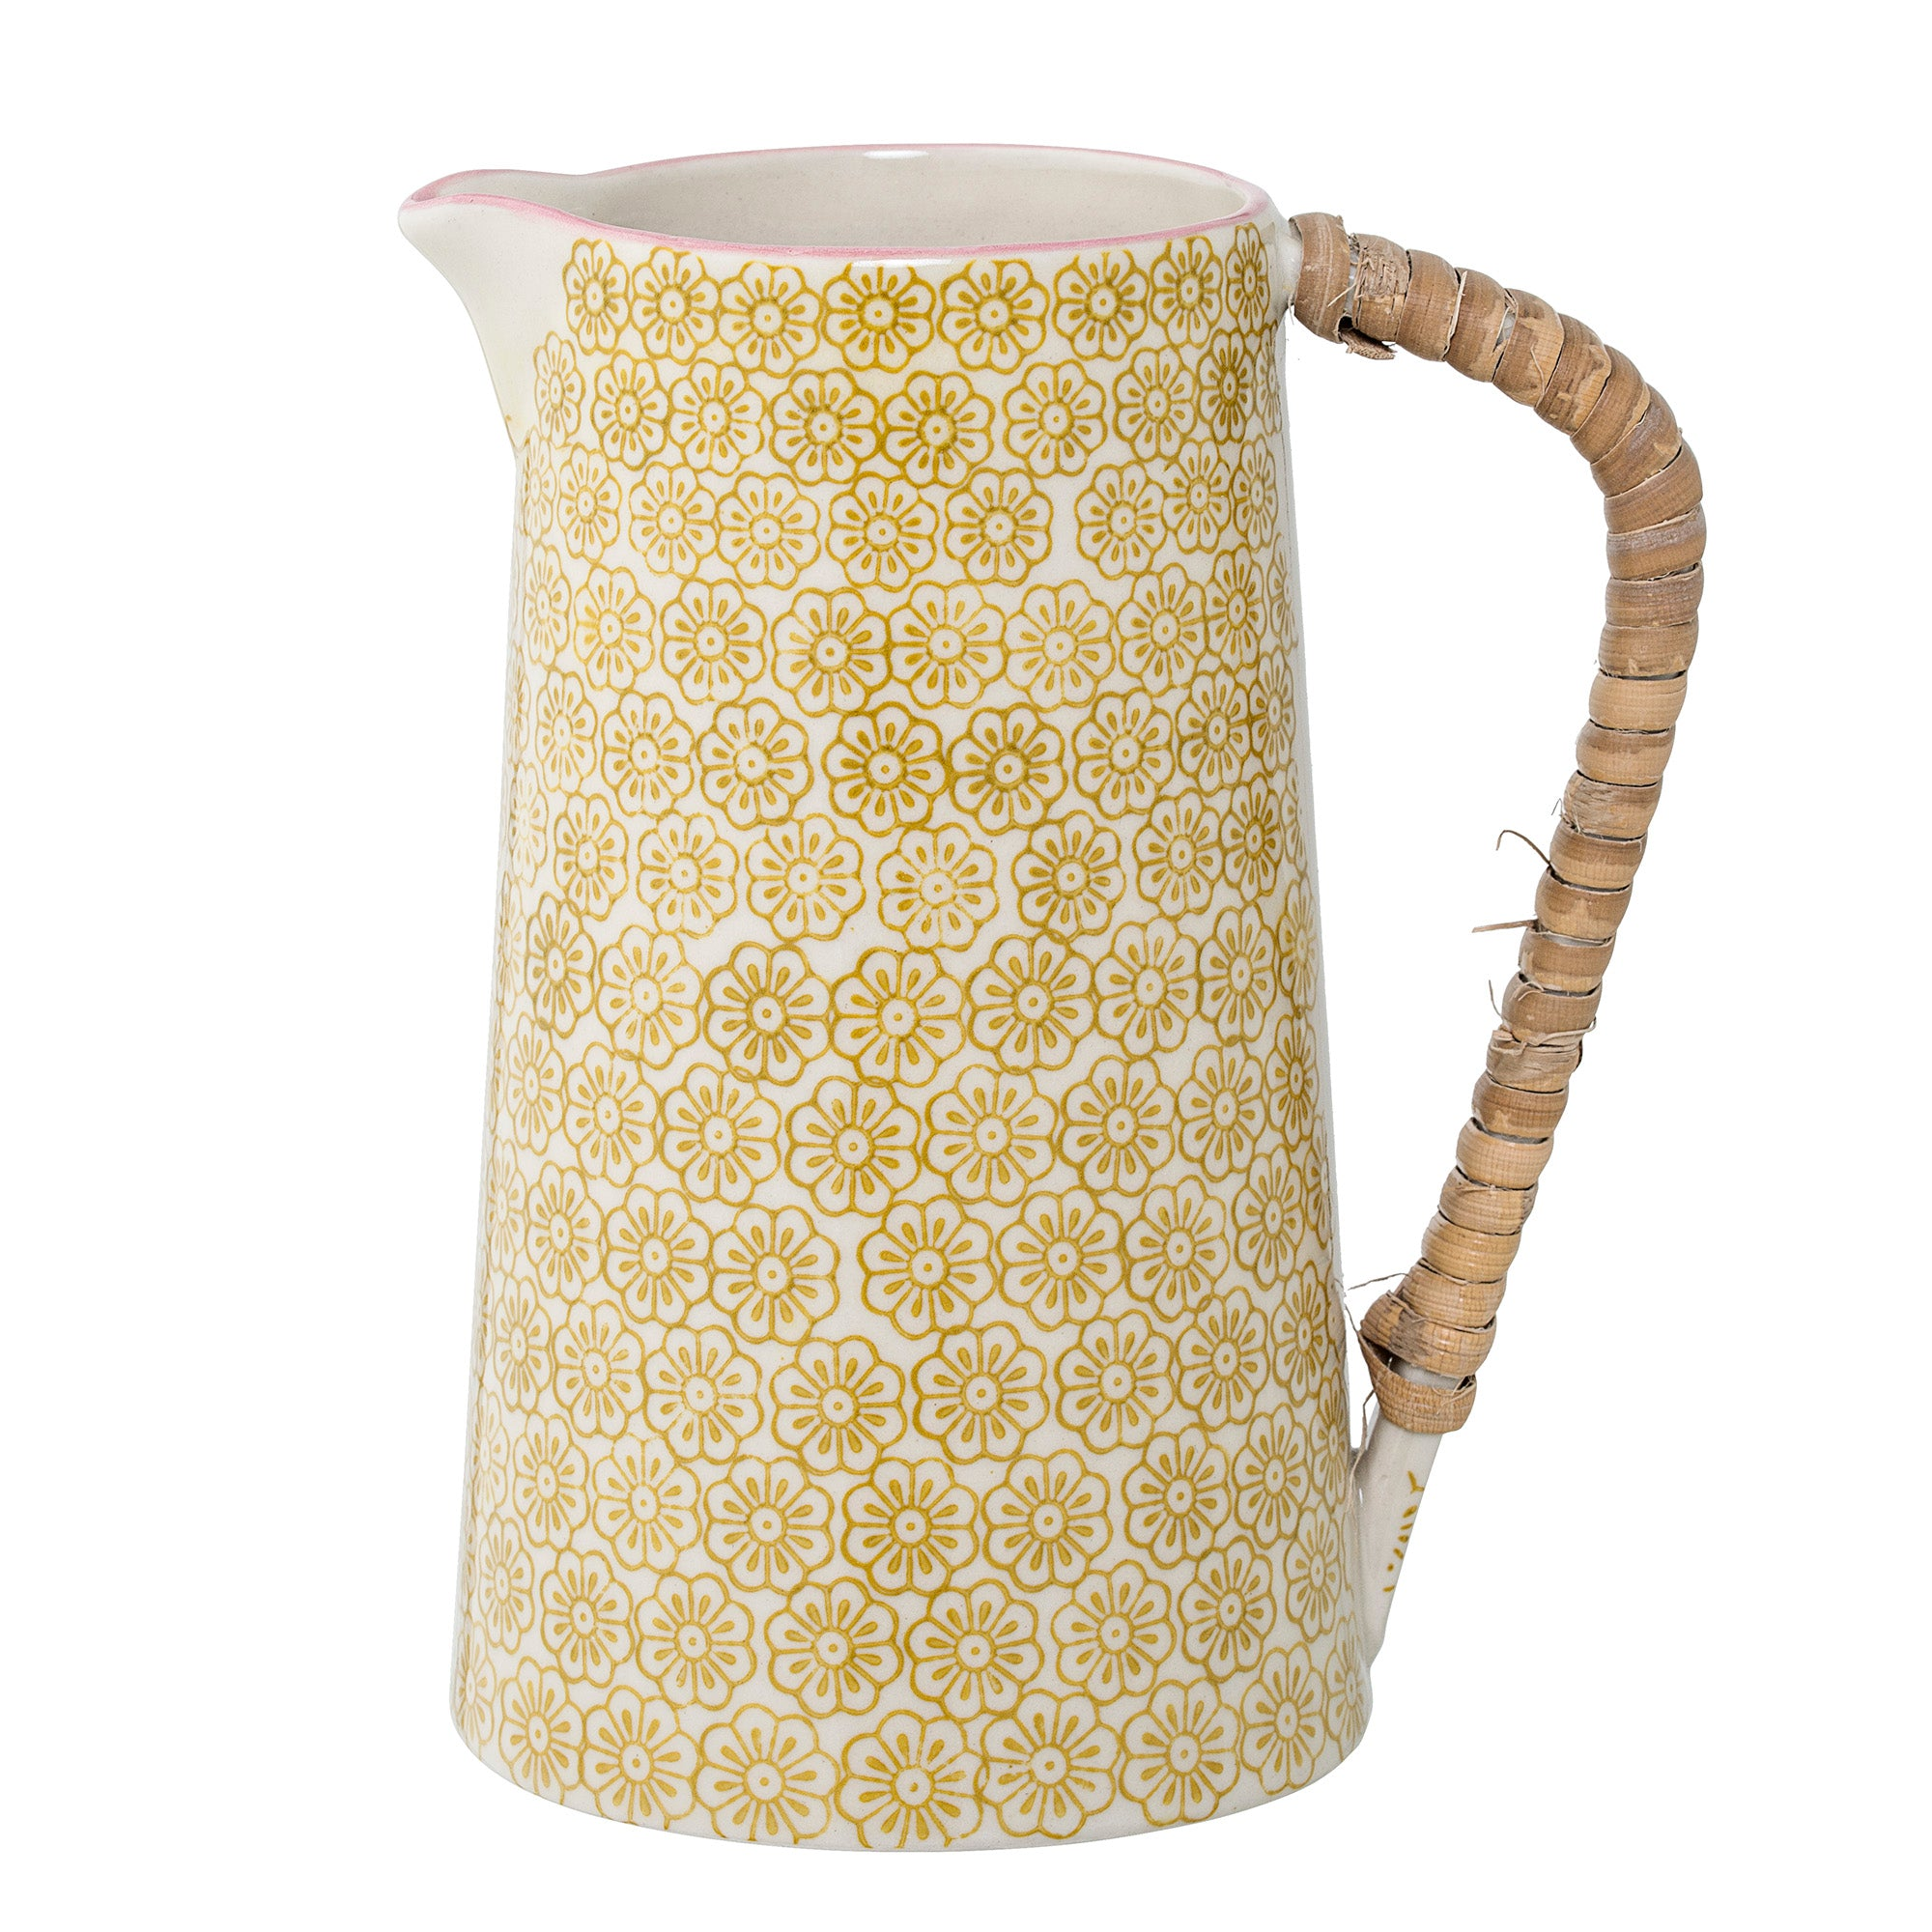 Bloomingville Mustard Susie Jug Homeware- a-fly-went-by.myshopify.com